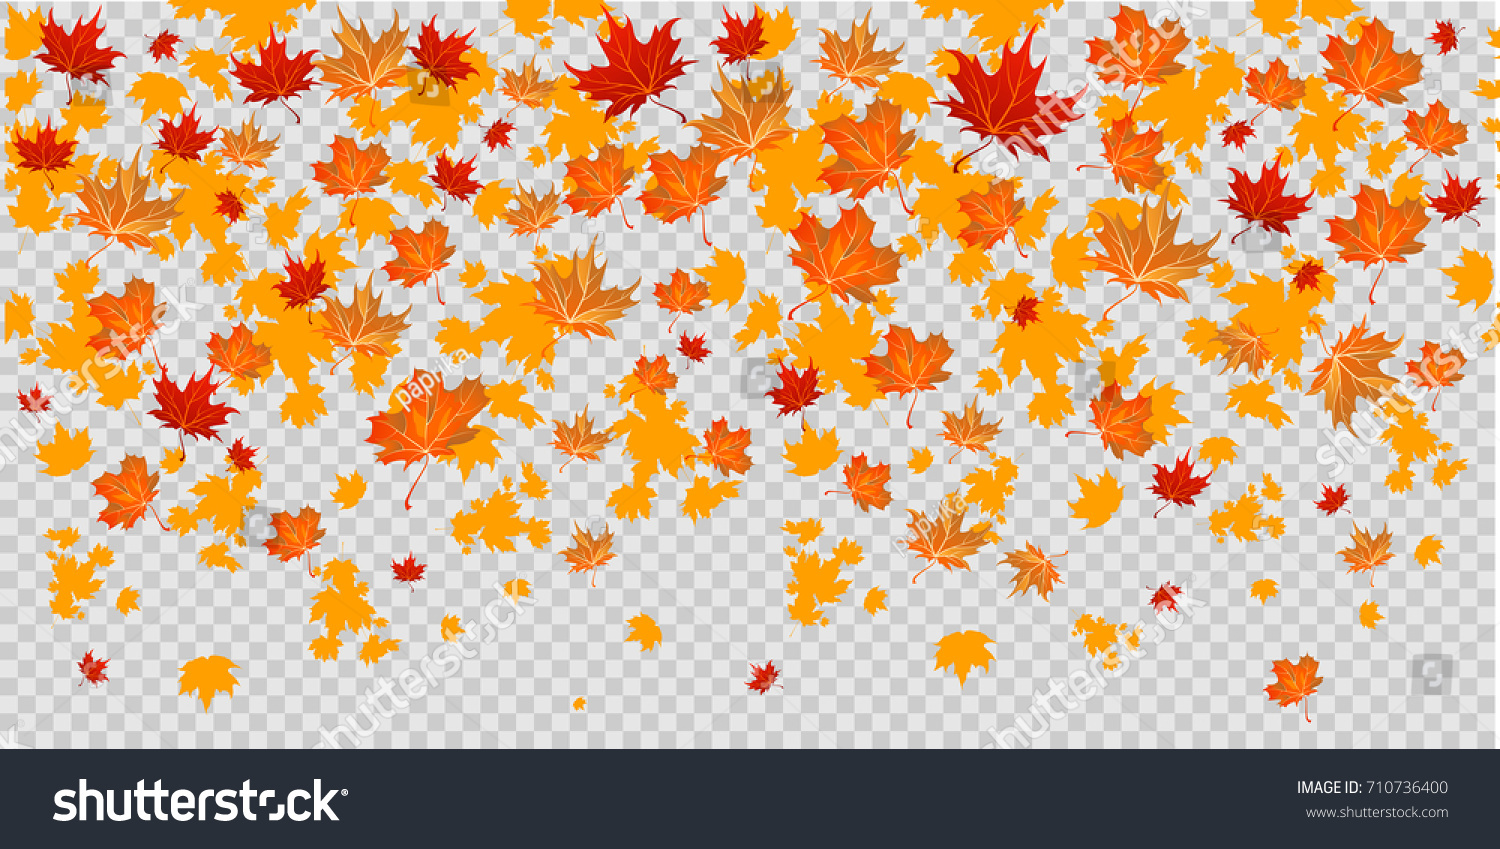 Autumn leaves design elements. Maple fall leaves on transparent background.